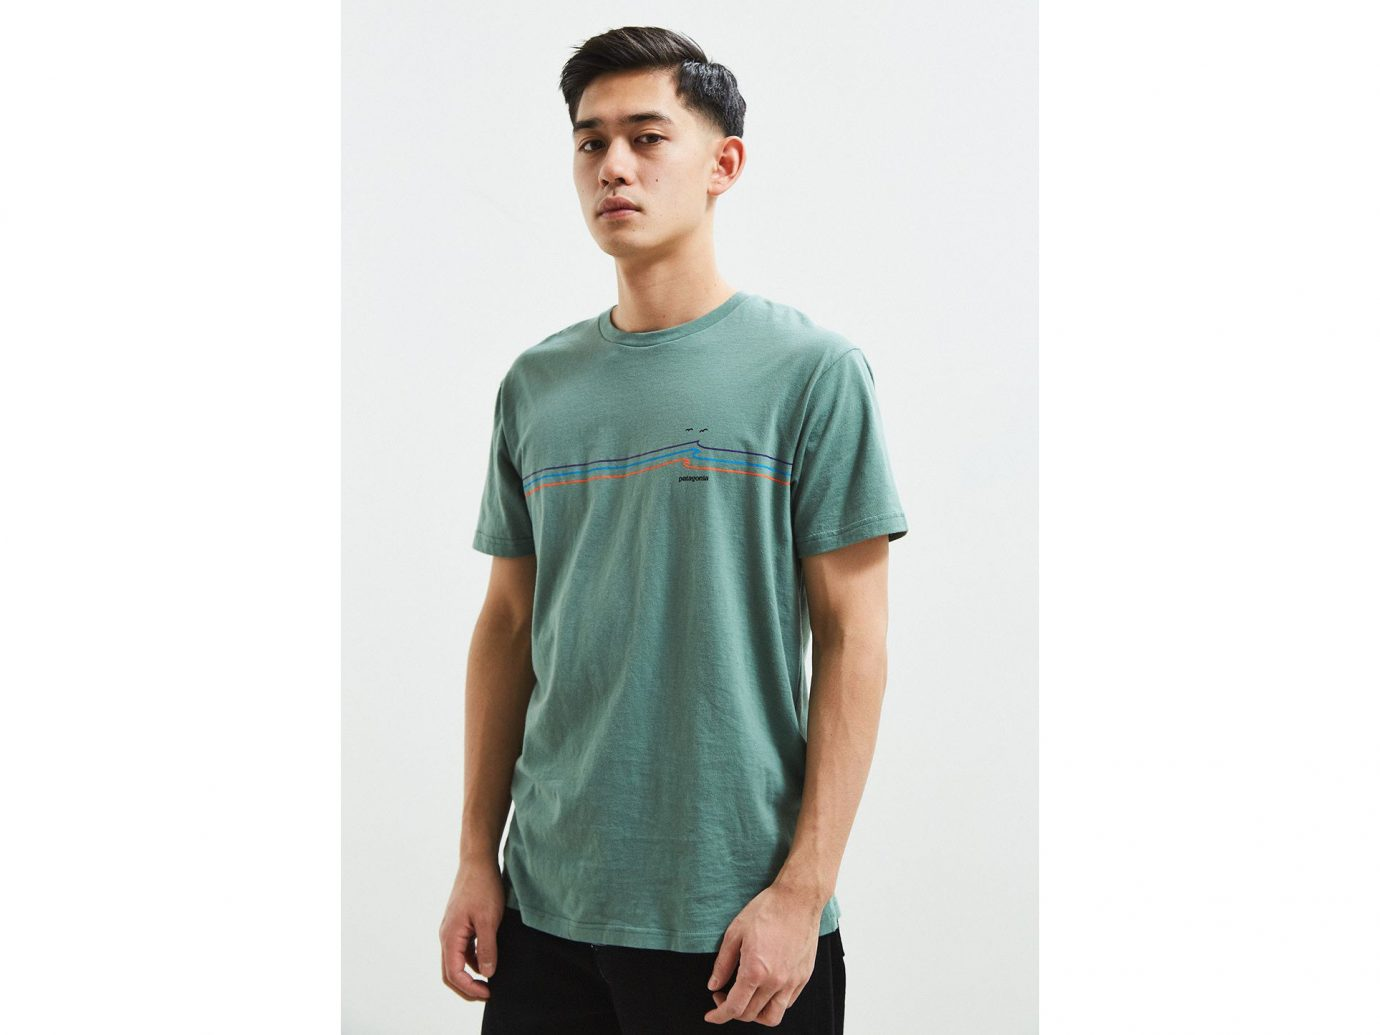 Spring Travel Style + Design Summer Travel Travel Shop person standing t shirt man sleeve shoulder green neck posing product pocket long sleeved t shirt trouser male